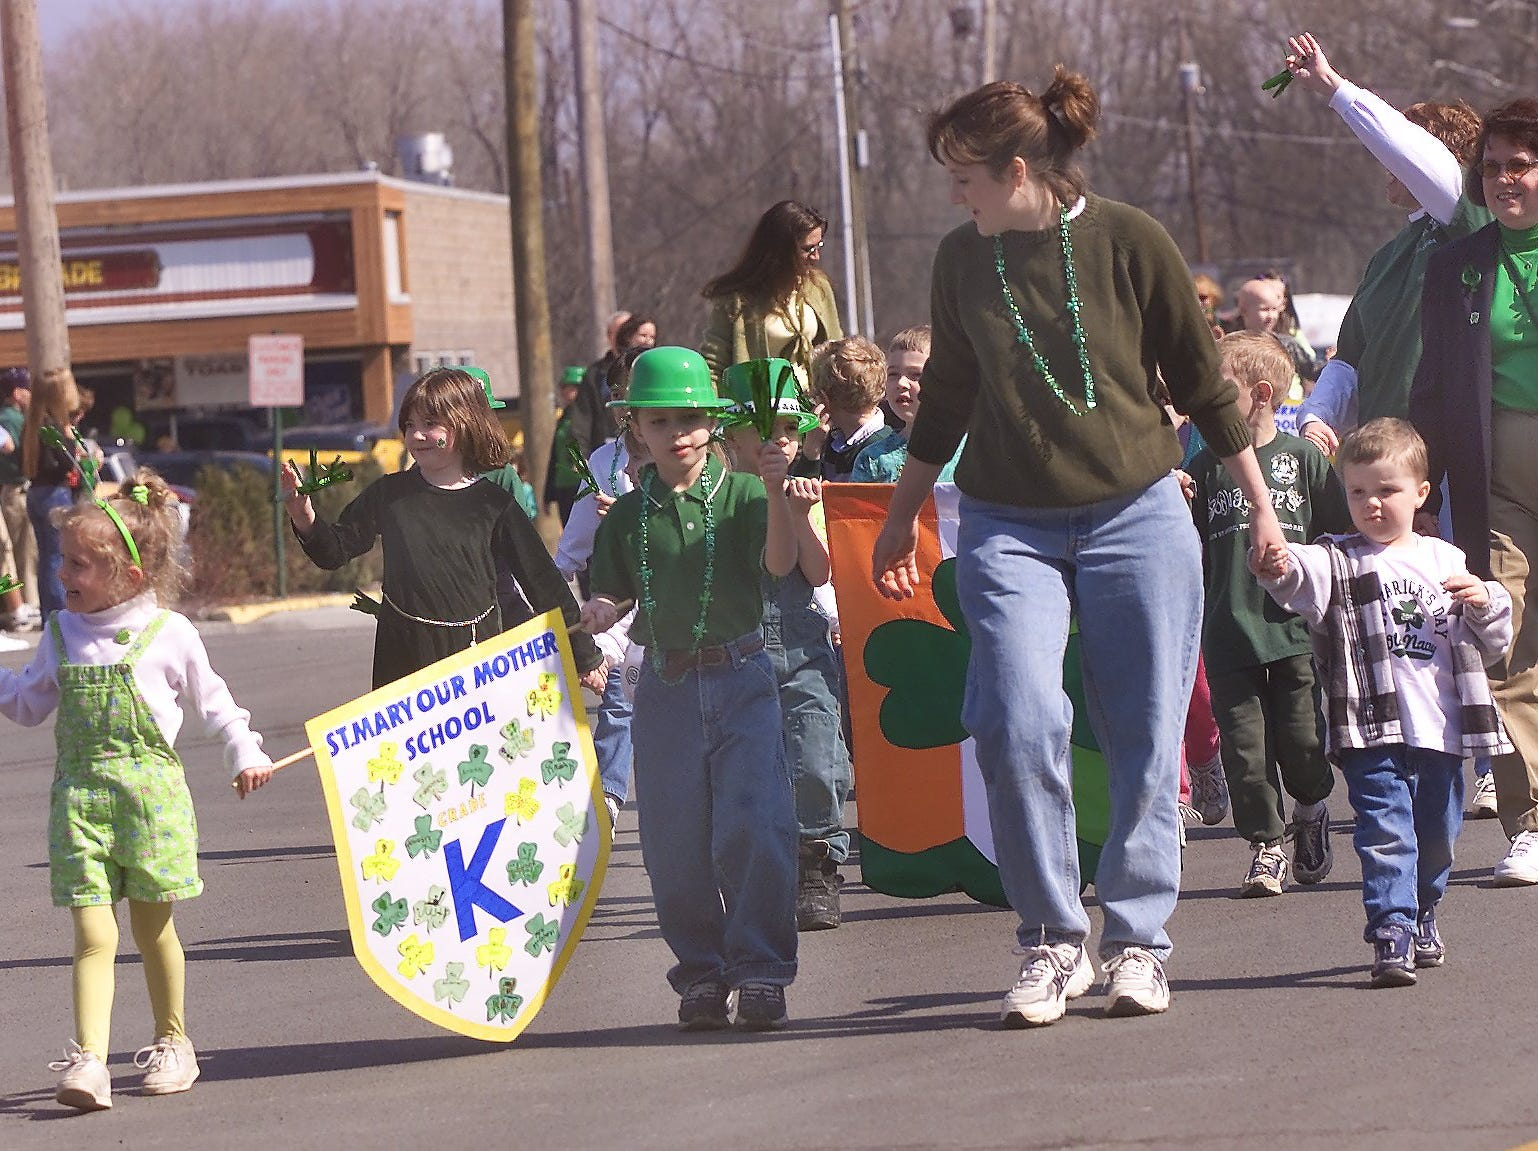 2003: Members of the St. Mary Our Mother School kindergarten class march through Hanover Square on Monday during the St. Patrick's Day parade.